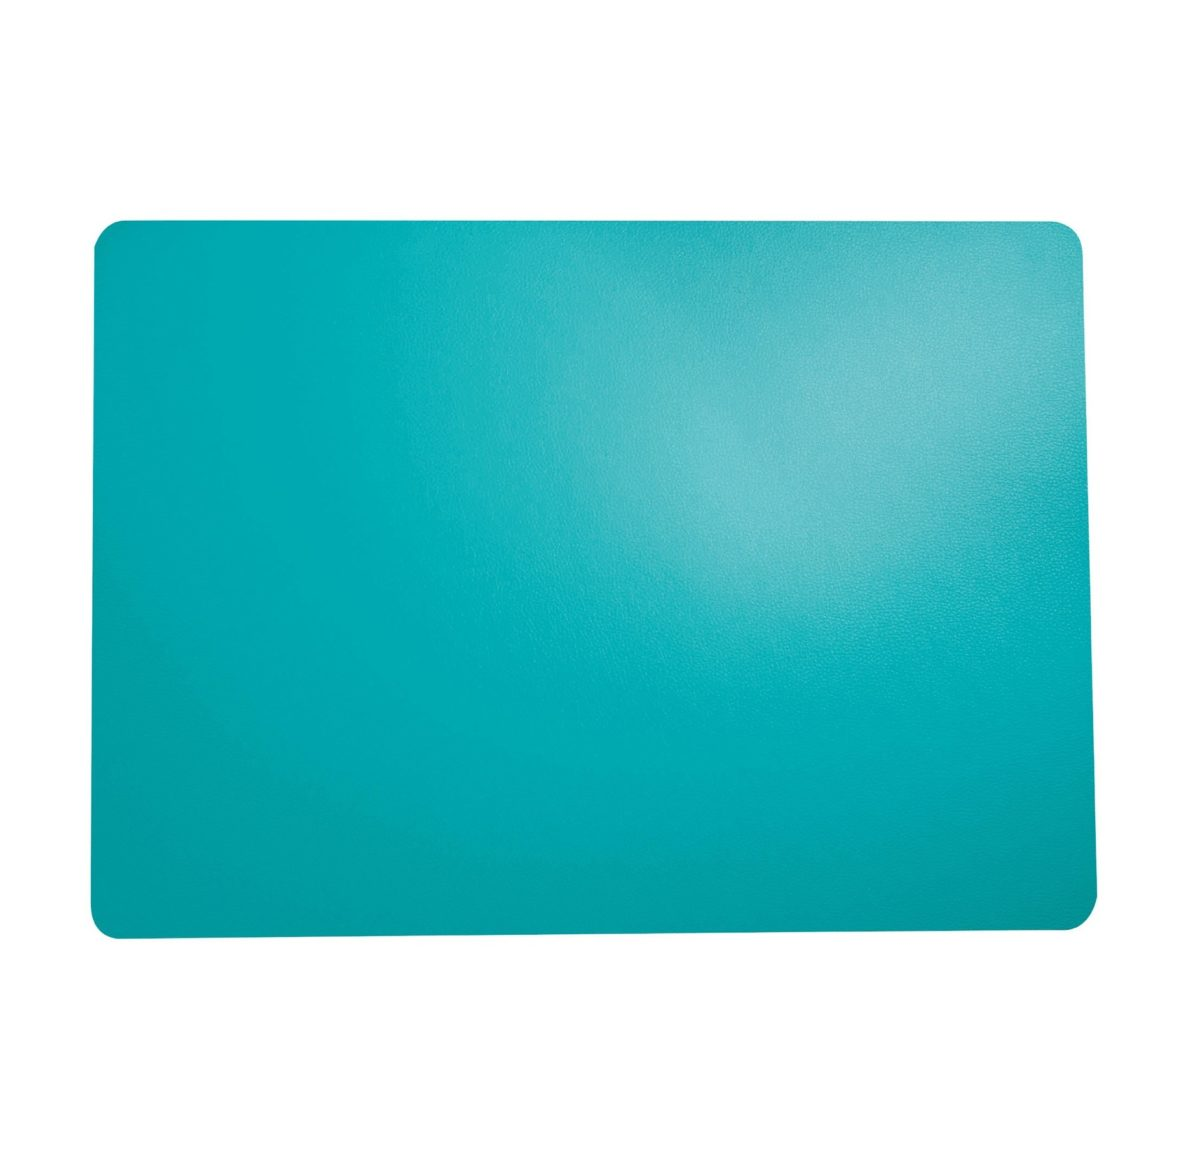 7816420 curacao 1200x1149 - Placemat Leather optic fine curacao 46*33 cm (7816420)